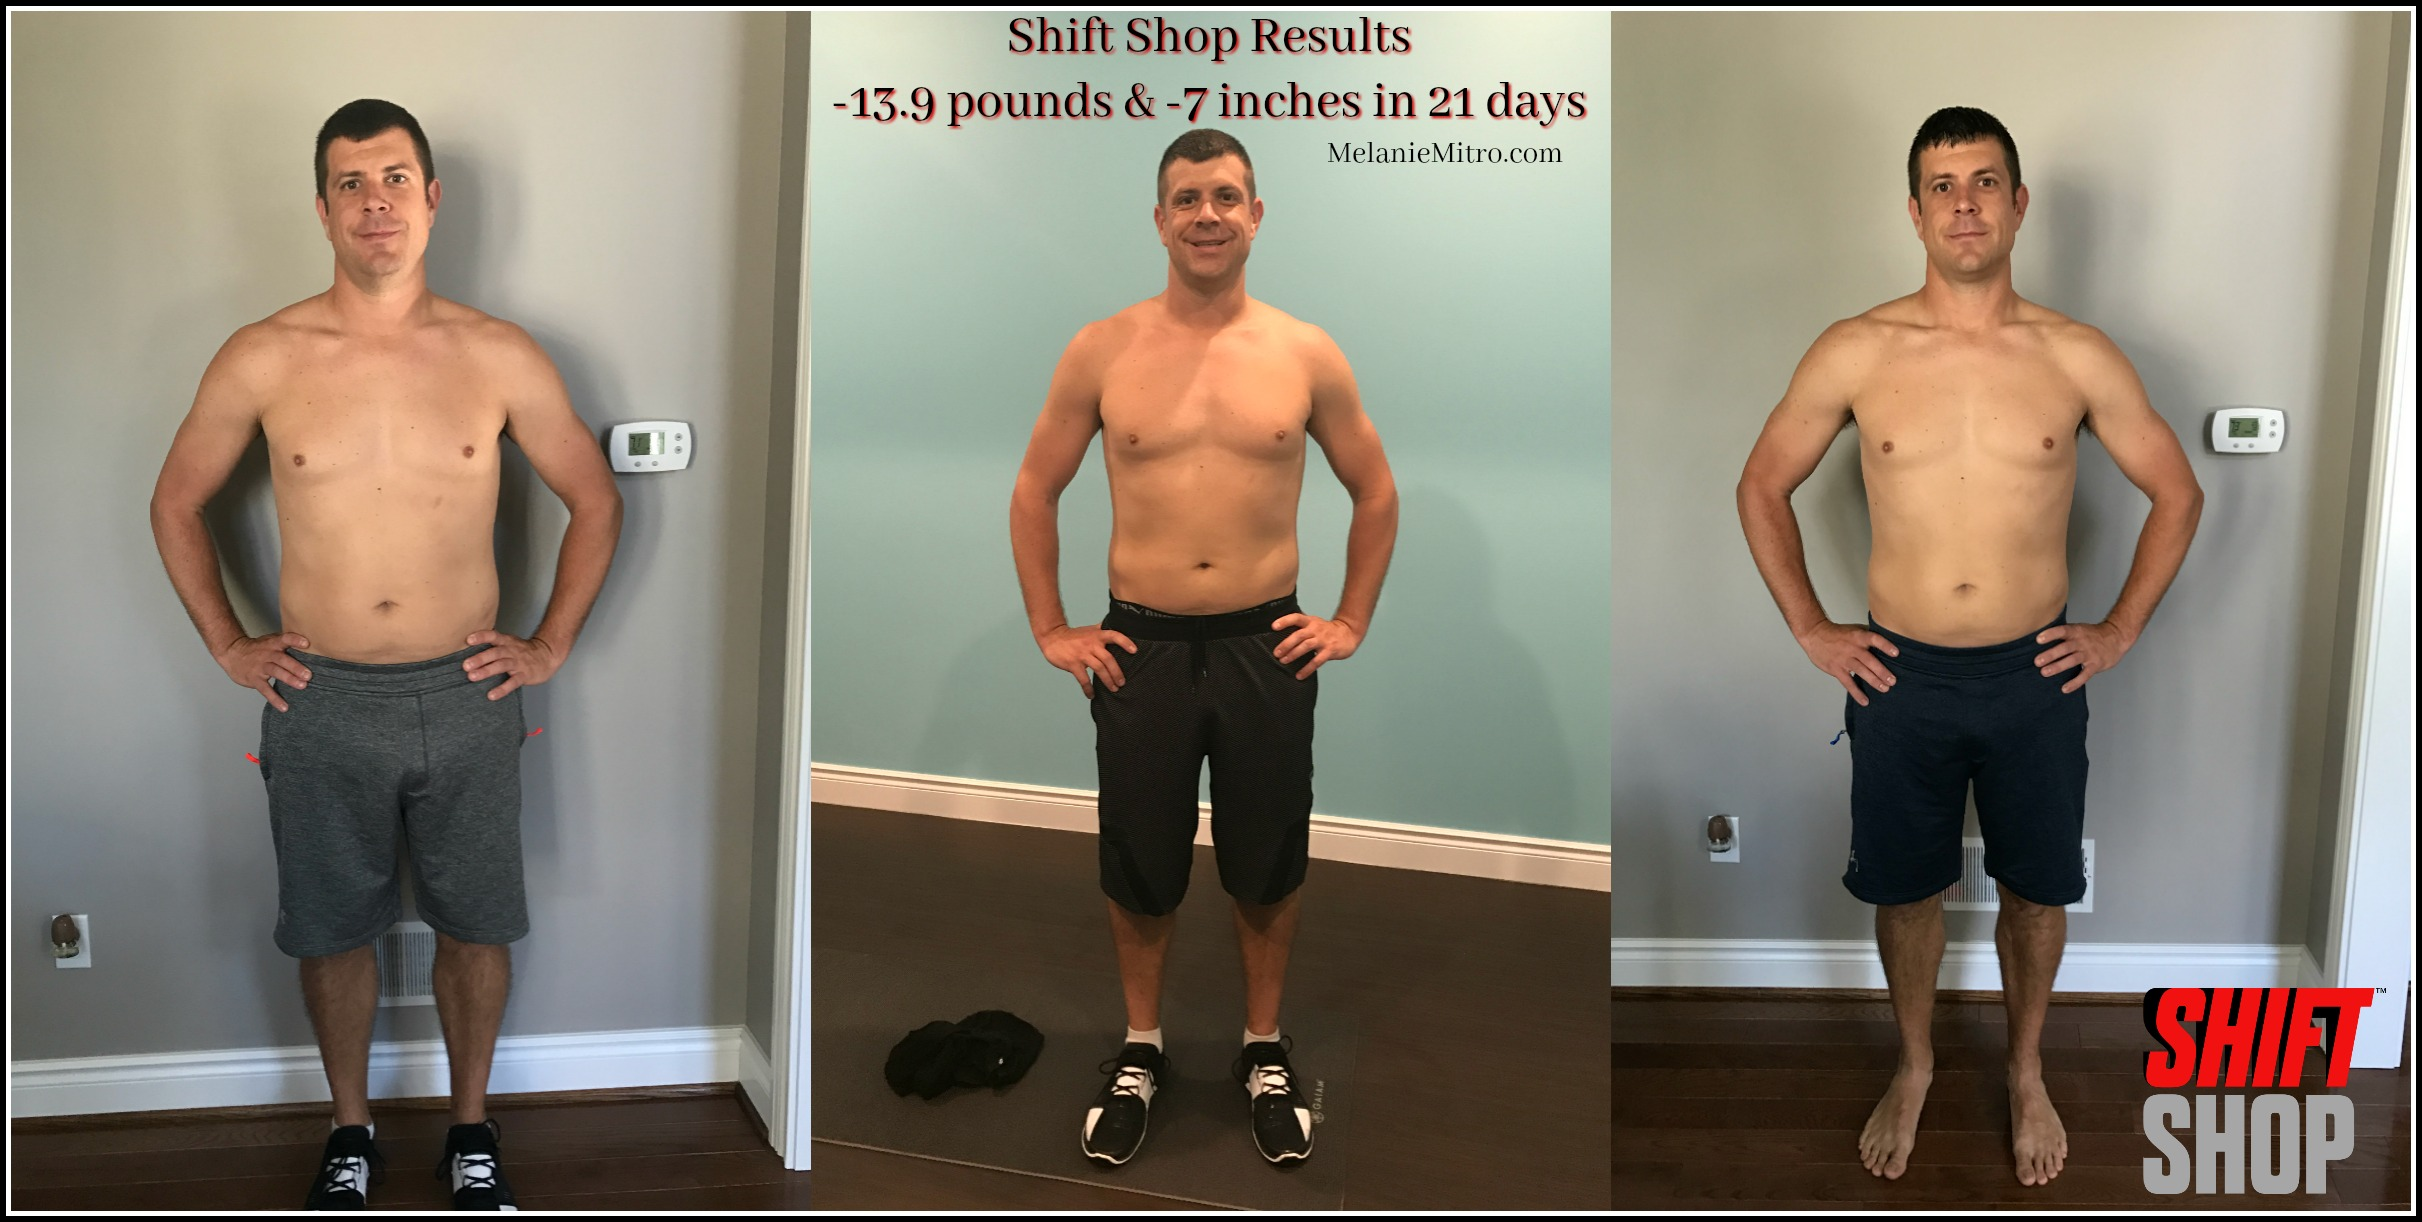 Shift Shop, Matt Mitro, Male Transformation, Shift Shop Test Group, Chris Downing